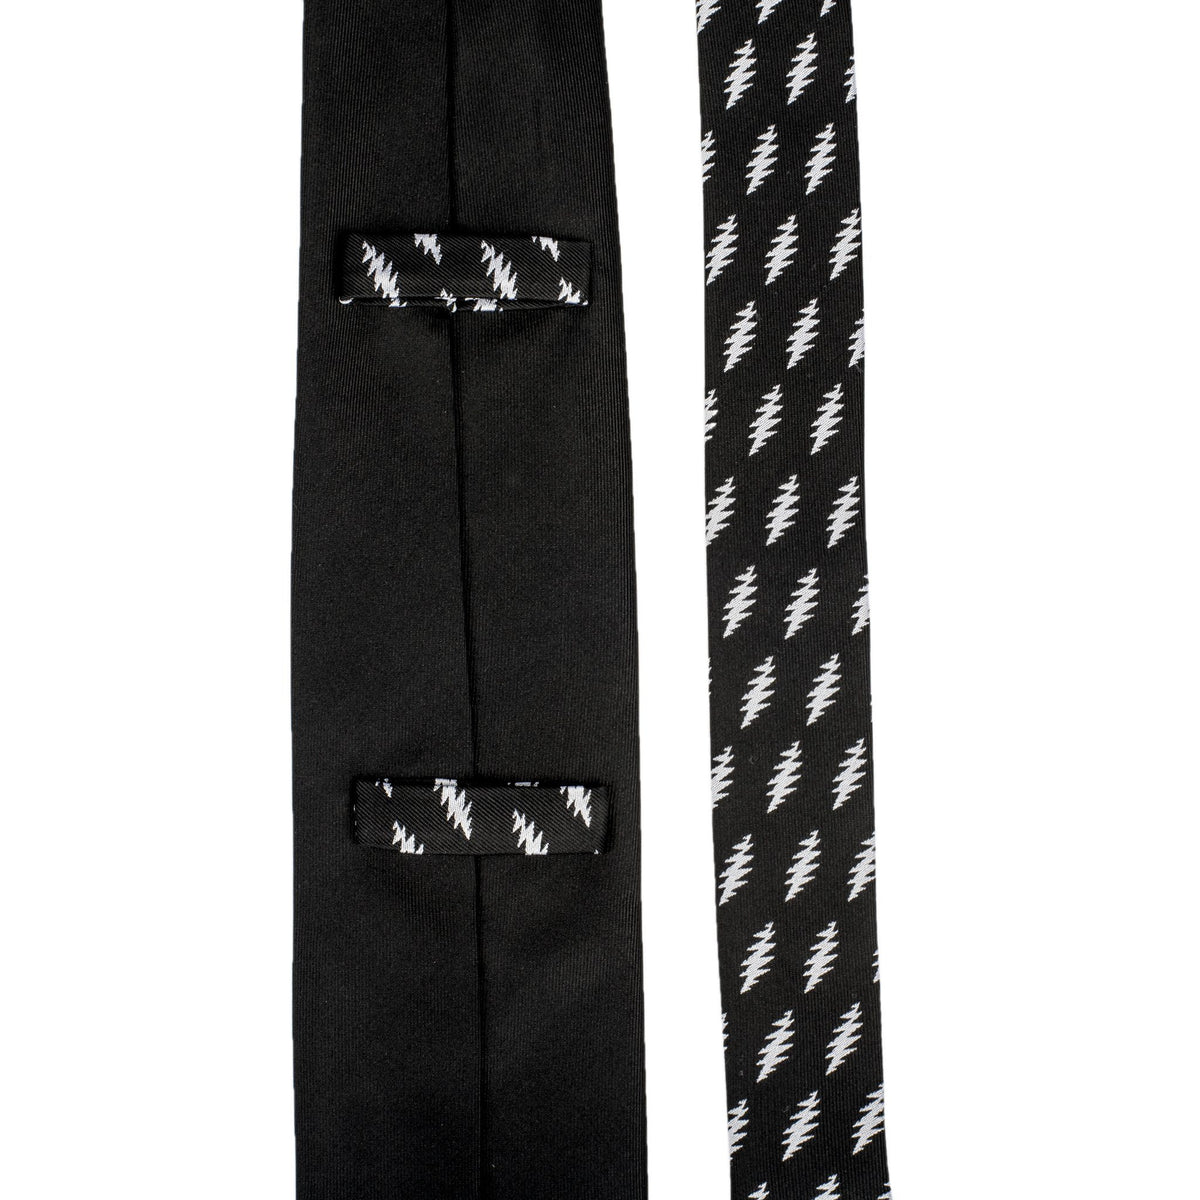 Grateful Dead Black 13 Point Bolt Tie - Section 119